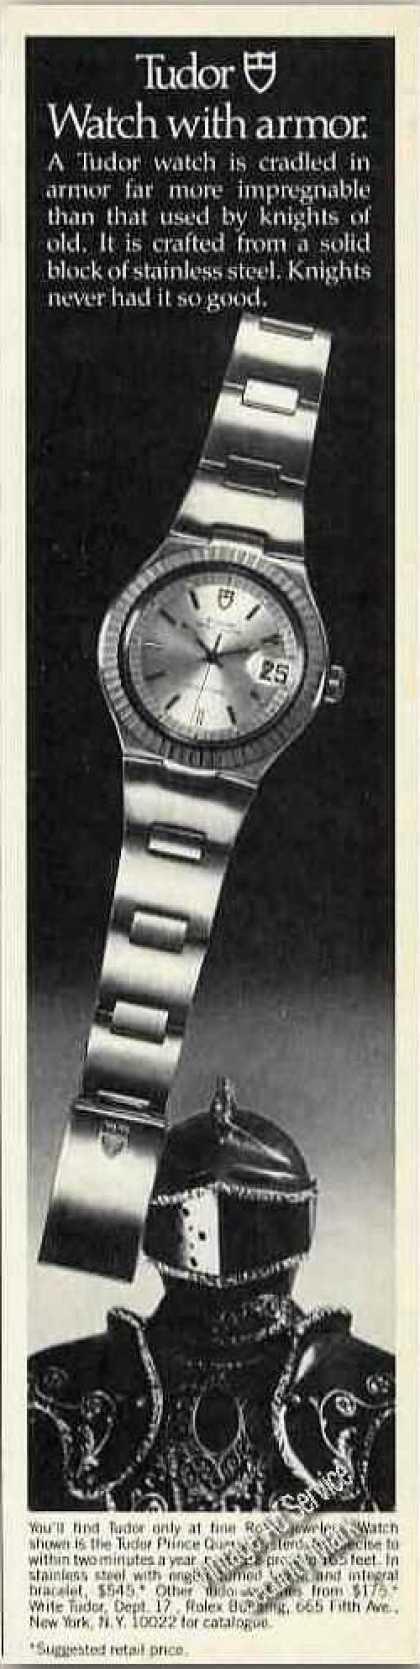 Tudor Price Quartz Oysterdate Watch (1979)